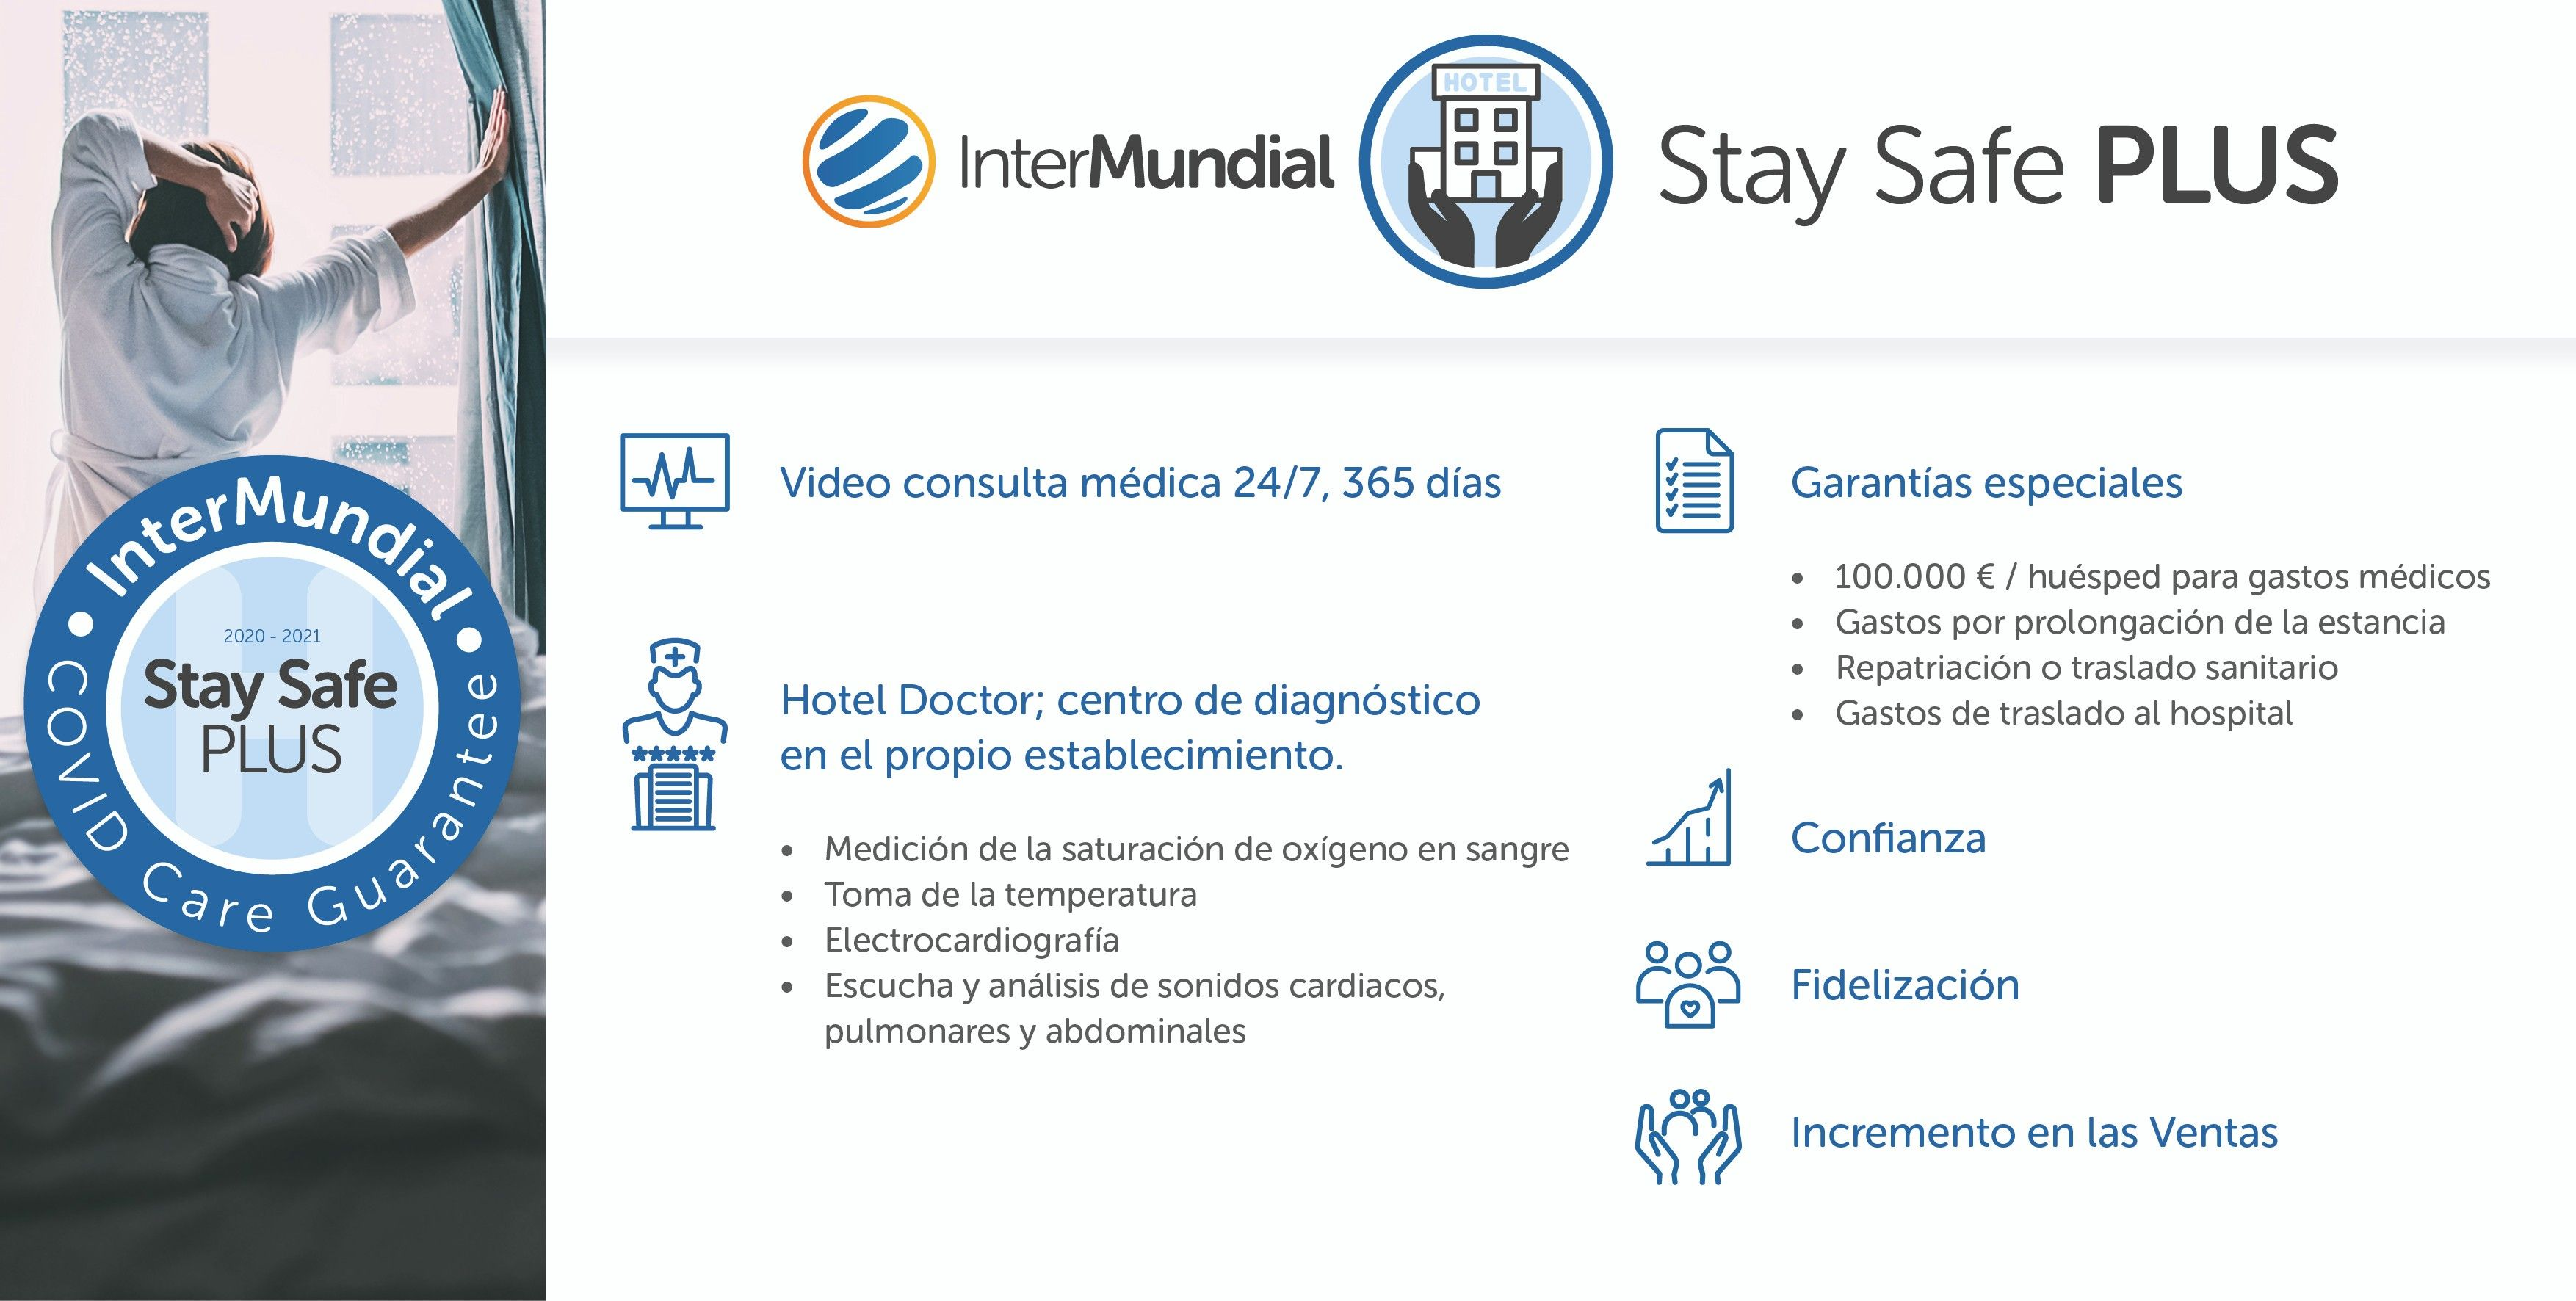 Stay Safe Plus de InterMundial, la apuesta de valor para el sector hotelero